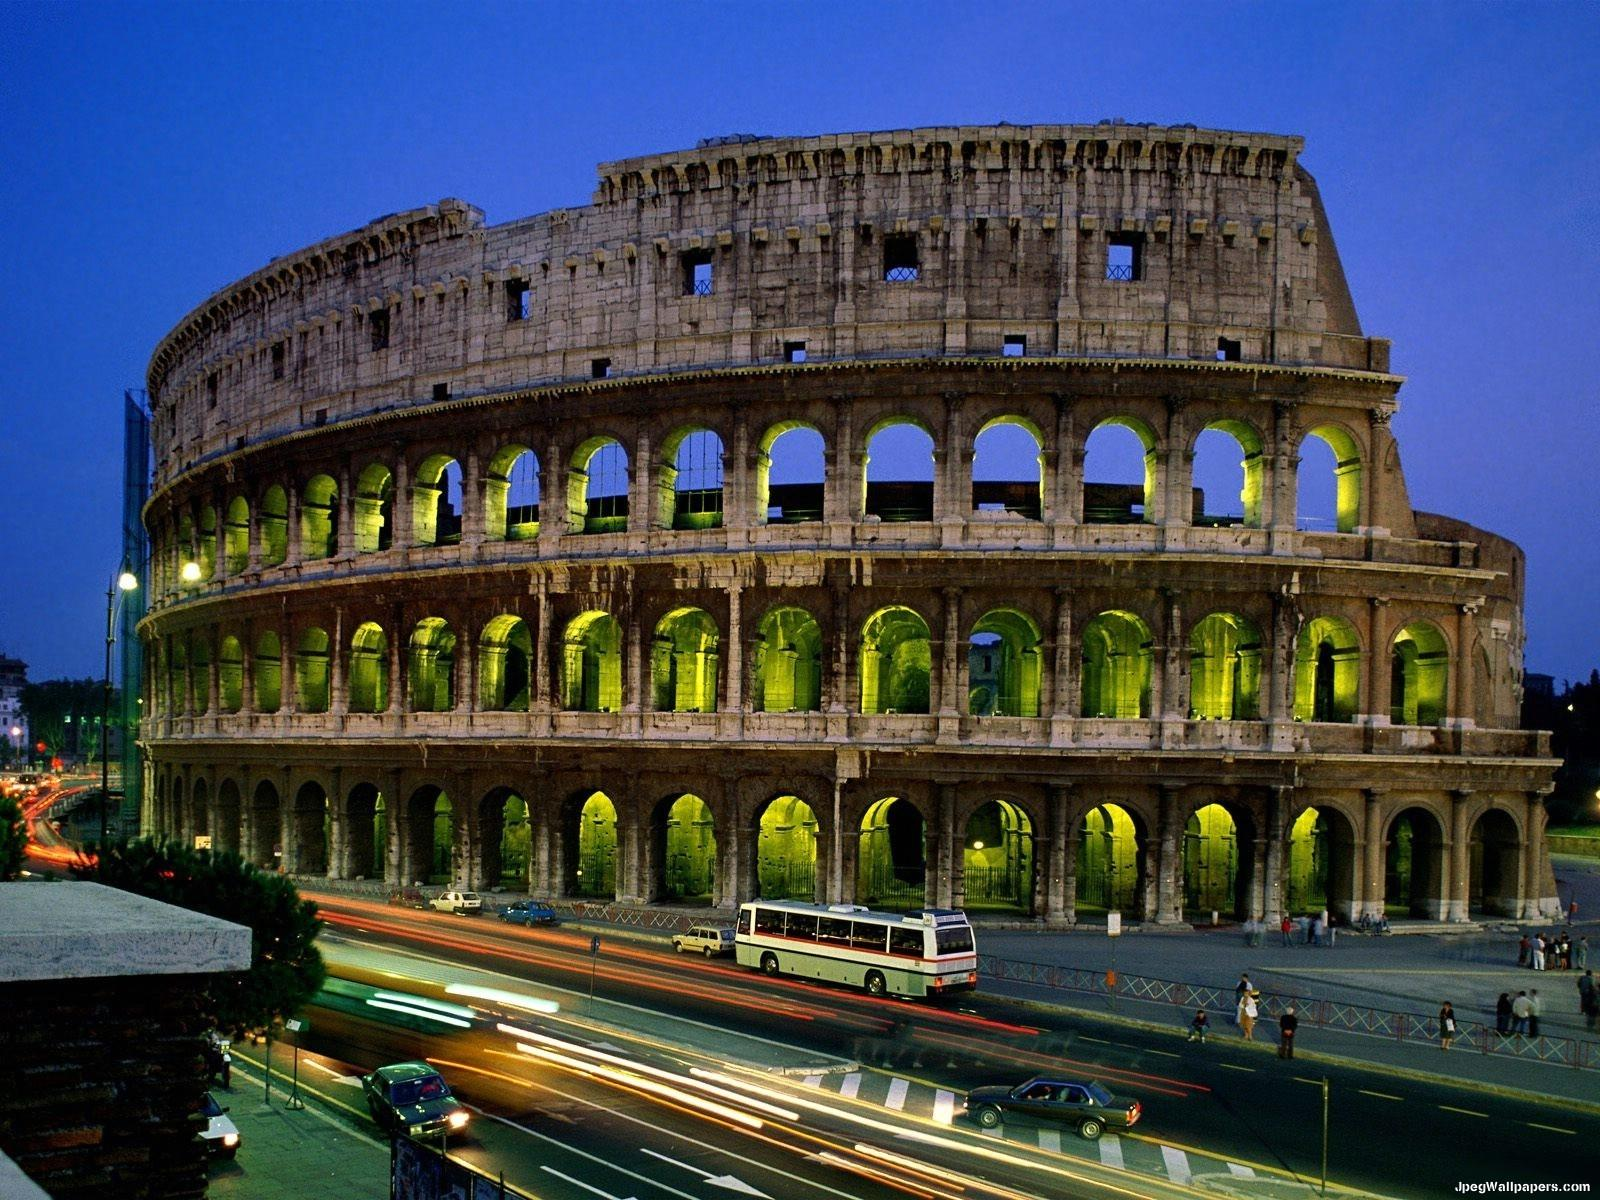 Colosseo roma italia wallpaper for Wallpaper italia